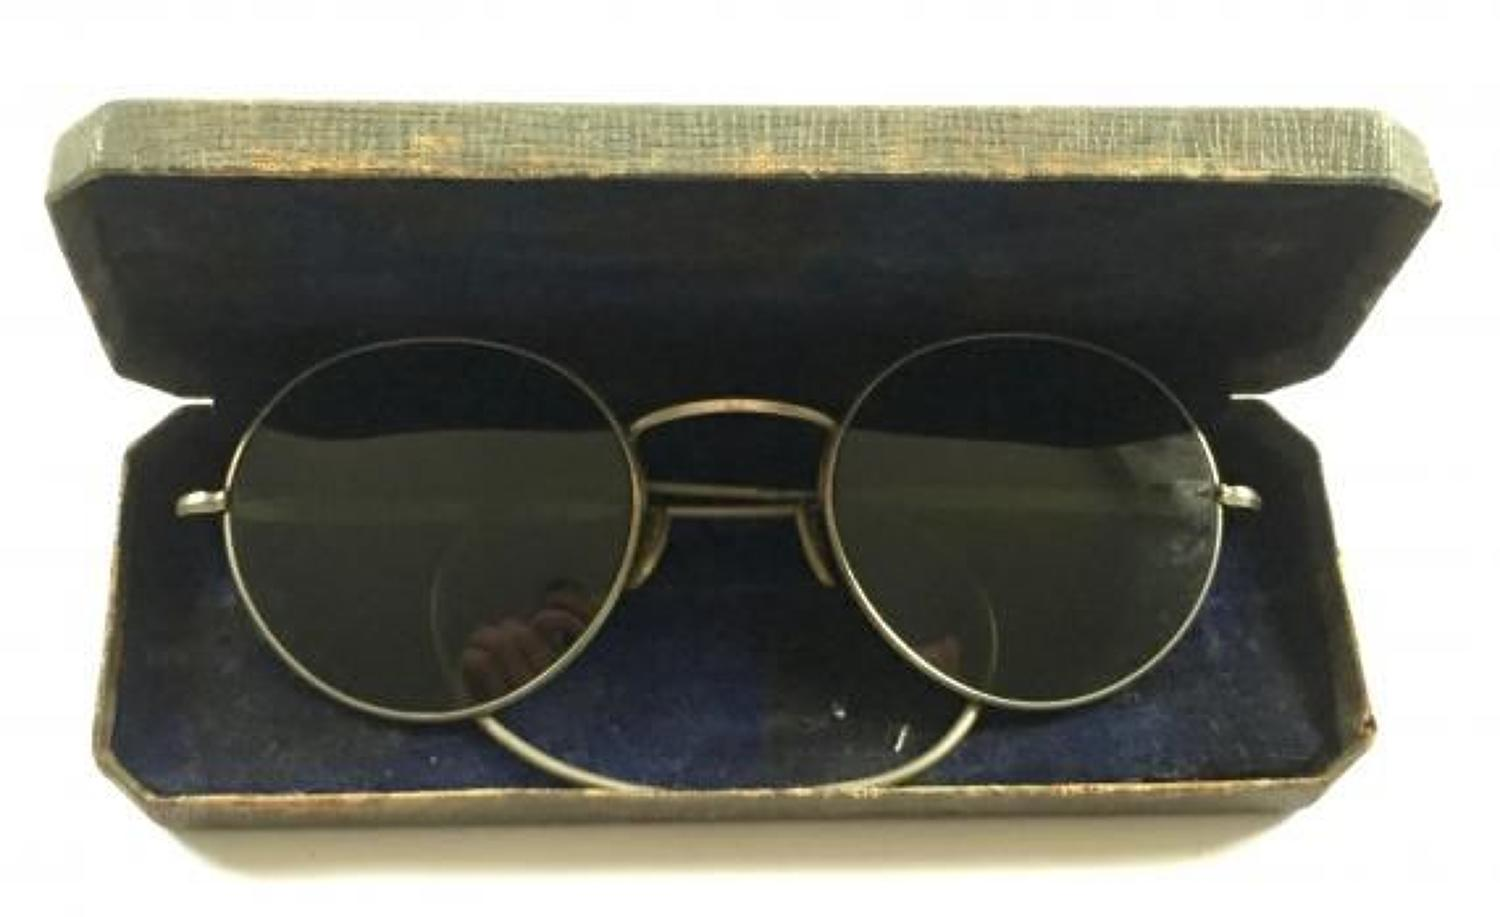 WW2 RAF Aircrew Flying Spectacles Sun Glasses.